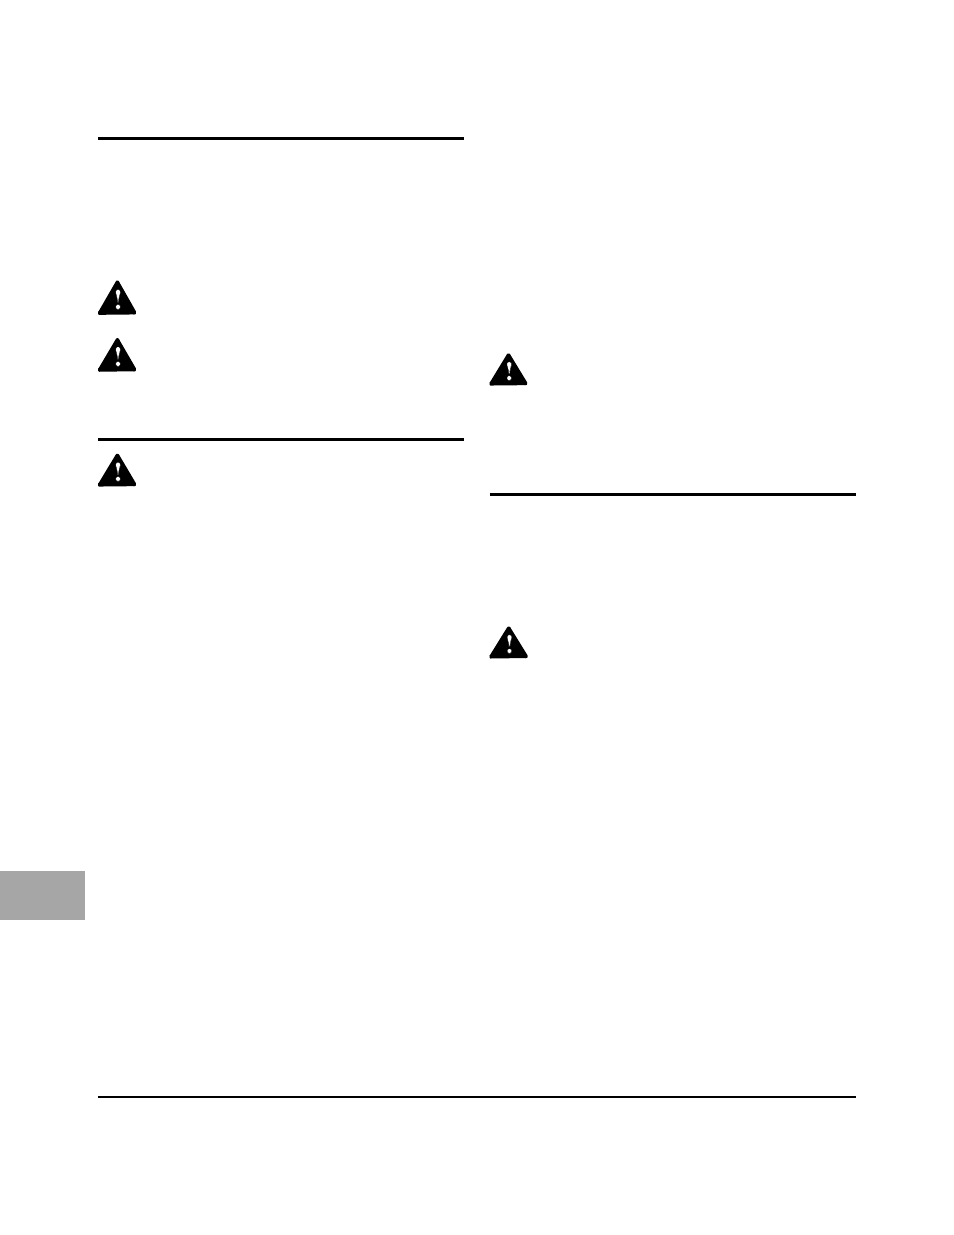 Safety Awareness Instructions Norcold 323x User Ac Dc Refrigerator Schematics Manual Page 4 17